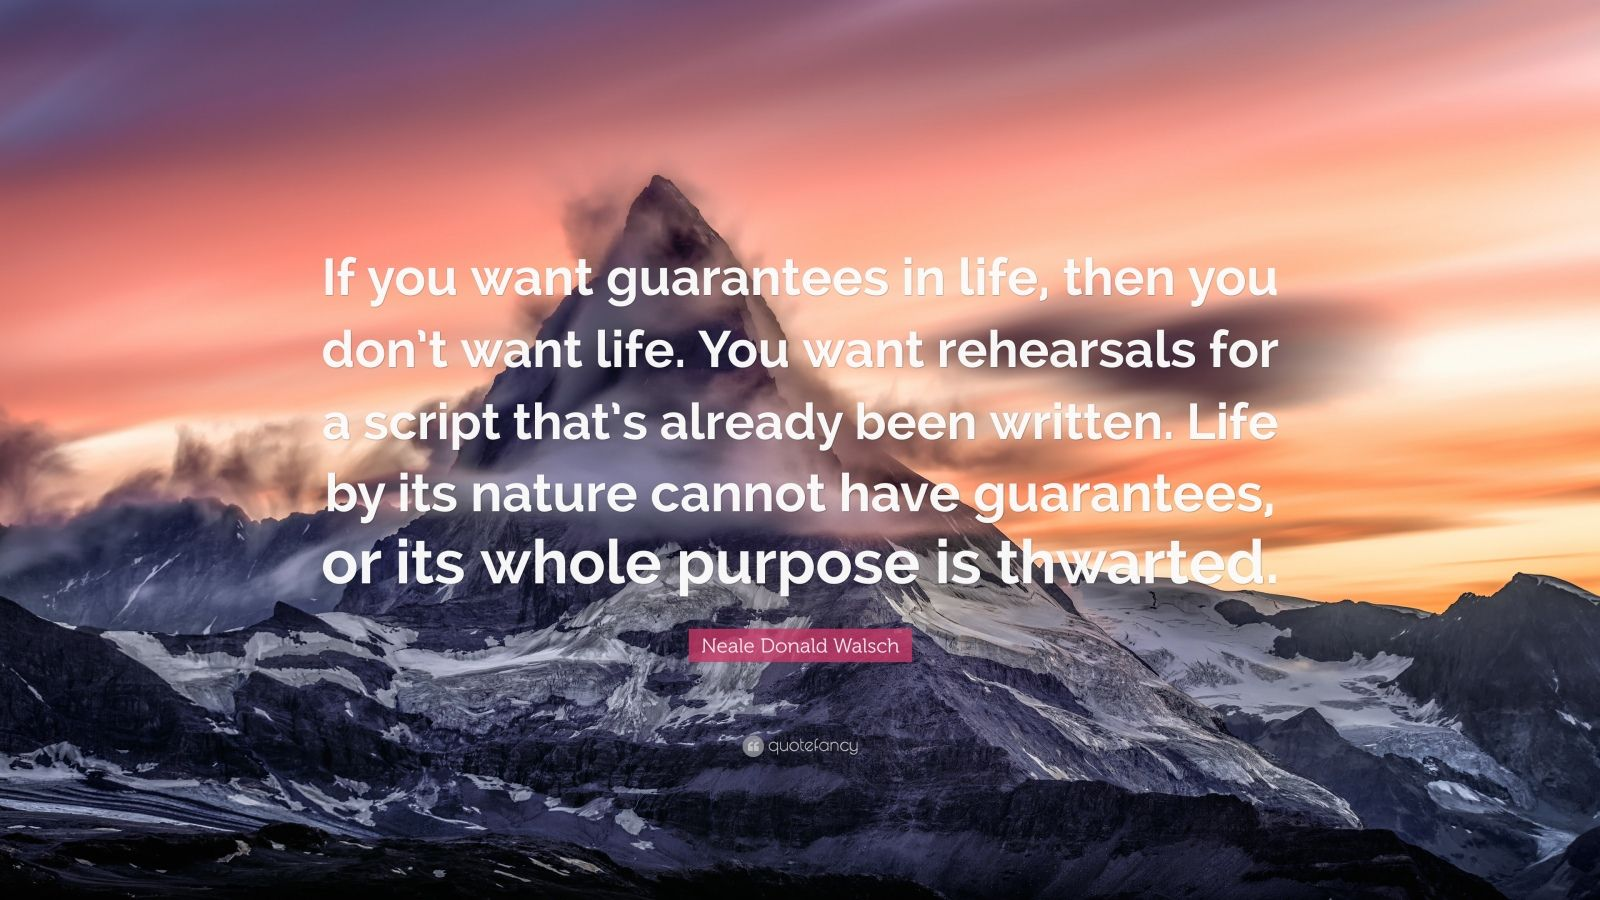 """Neale Donald Walsch Quote: """"If you want guarantees in life, then you don't want life. You want rehearsals for a script that's already been written. Life by its nature cannot have guarantees, or its whole purpose is thwarted."""""""